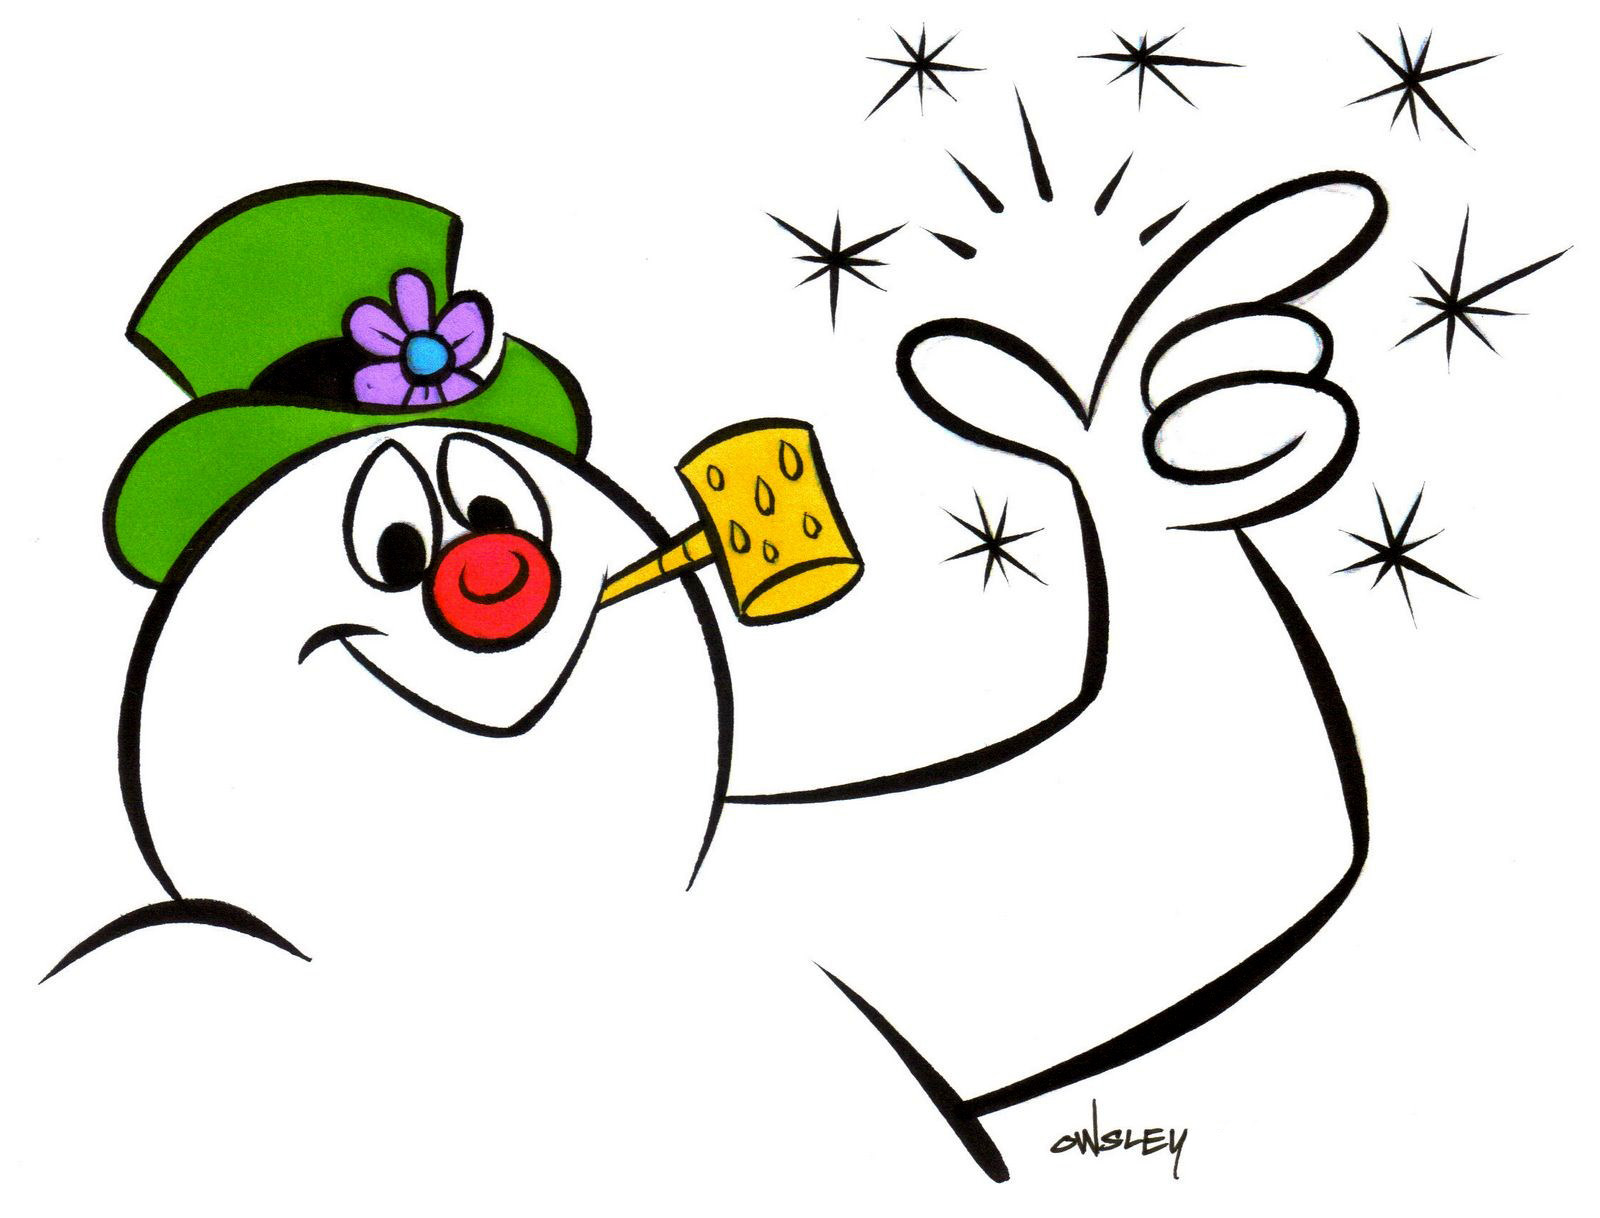 ... More!: FROSTY THE SNOWMAN and HEAT ... - ClipArt Best - ClipArt Best